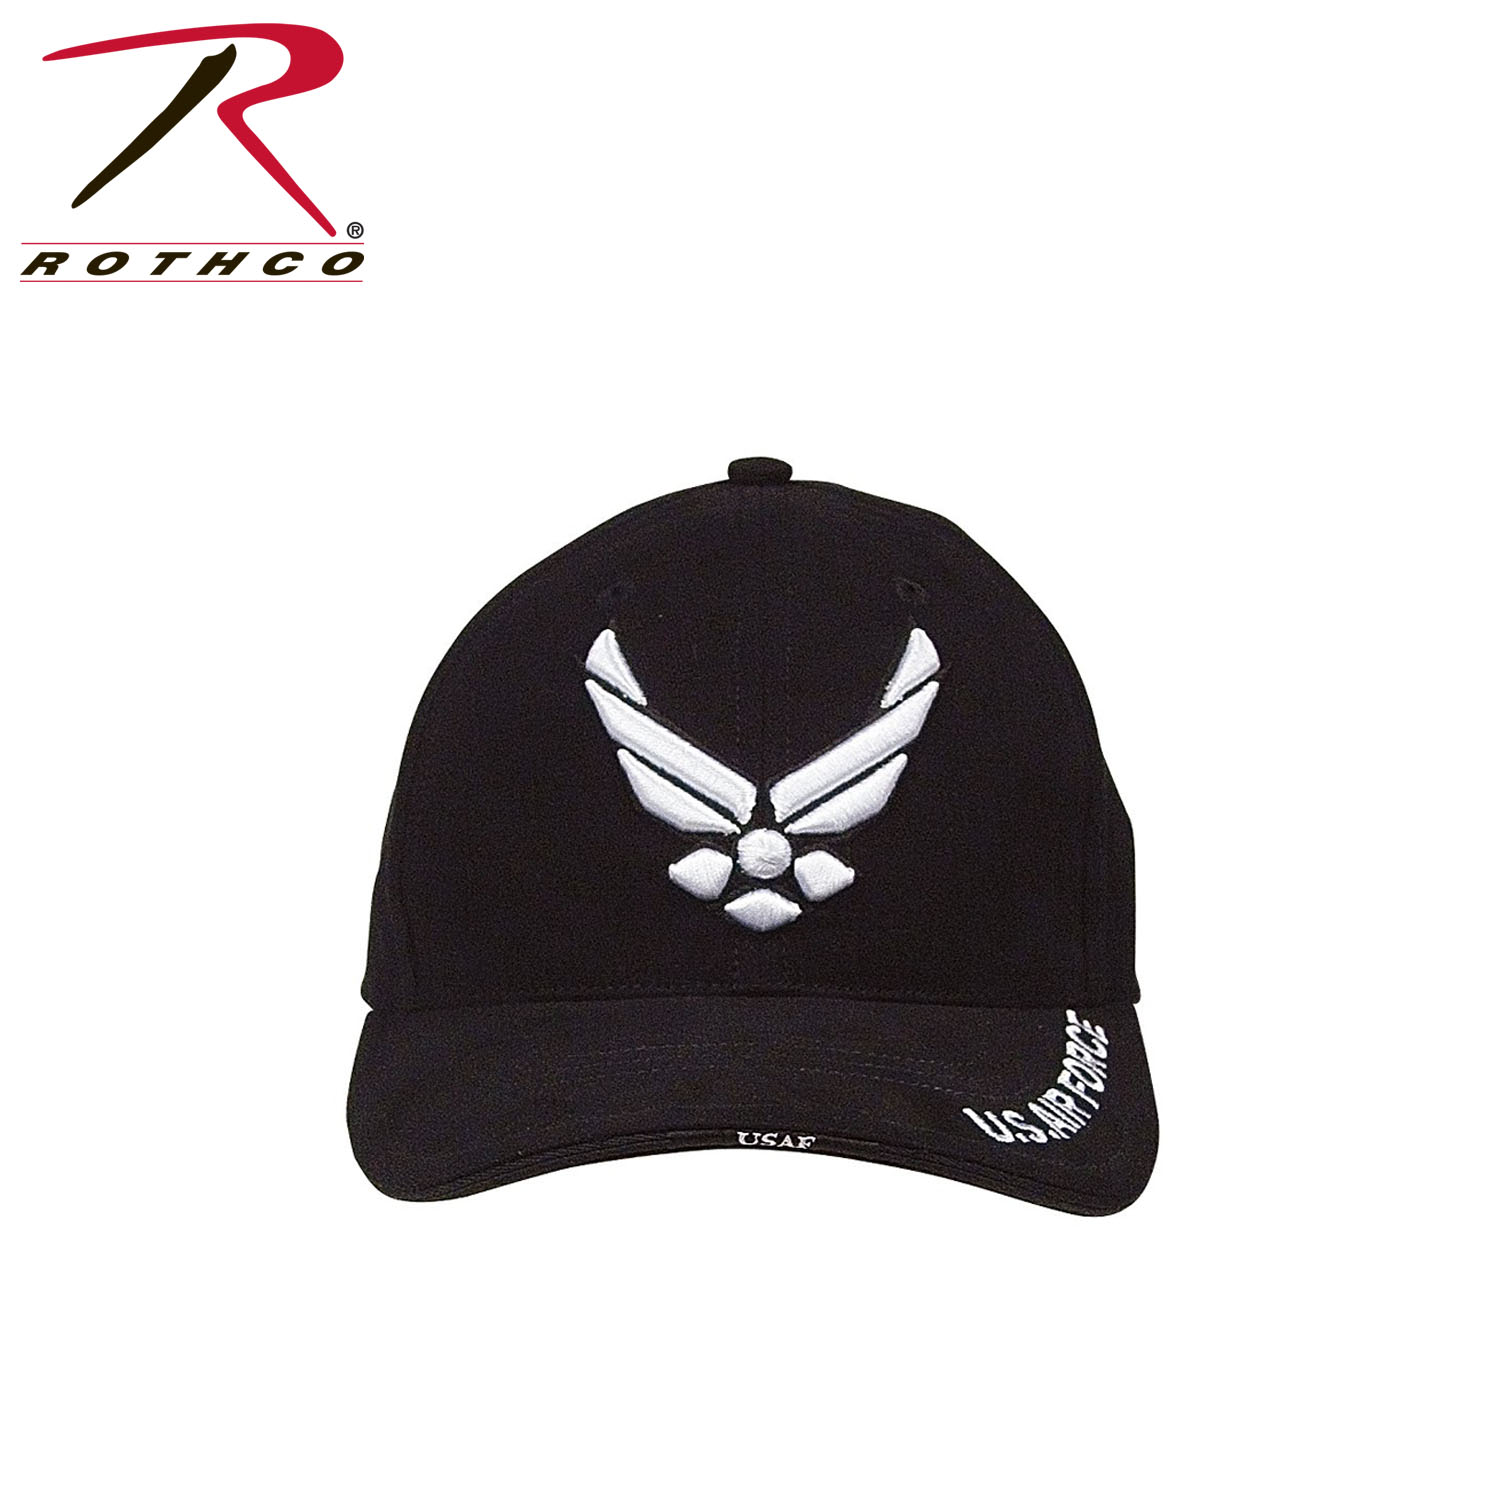 3635592c94134 Rothco Deluxe U.S. Air Force Wing Low Profile Insignia Cap